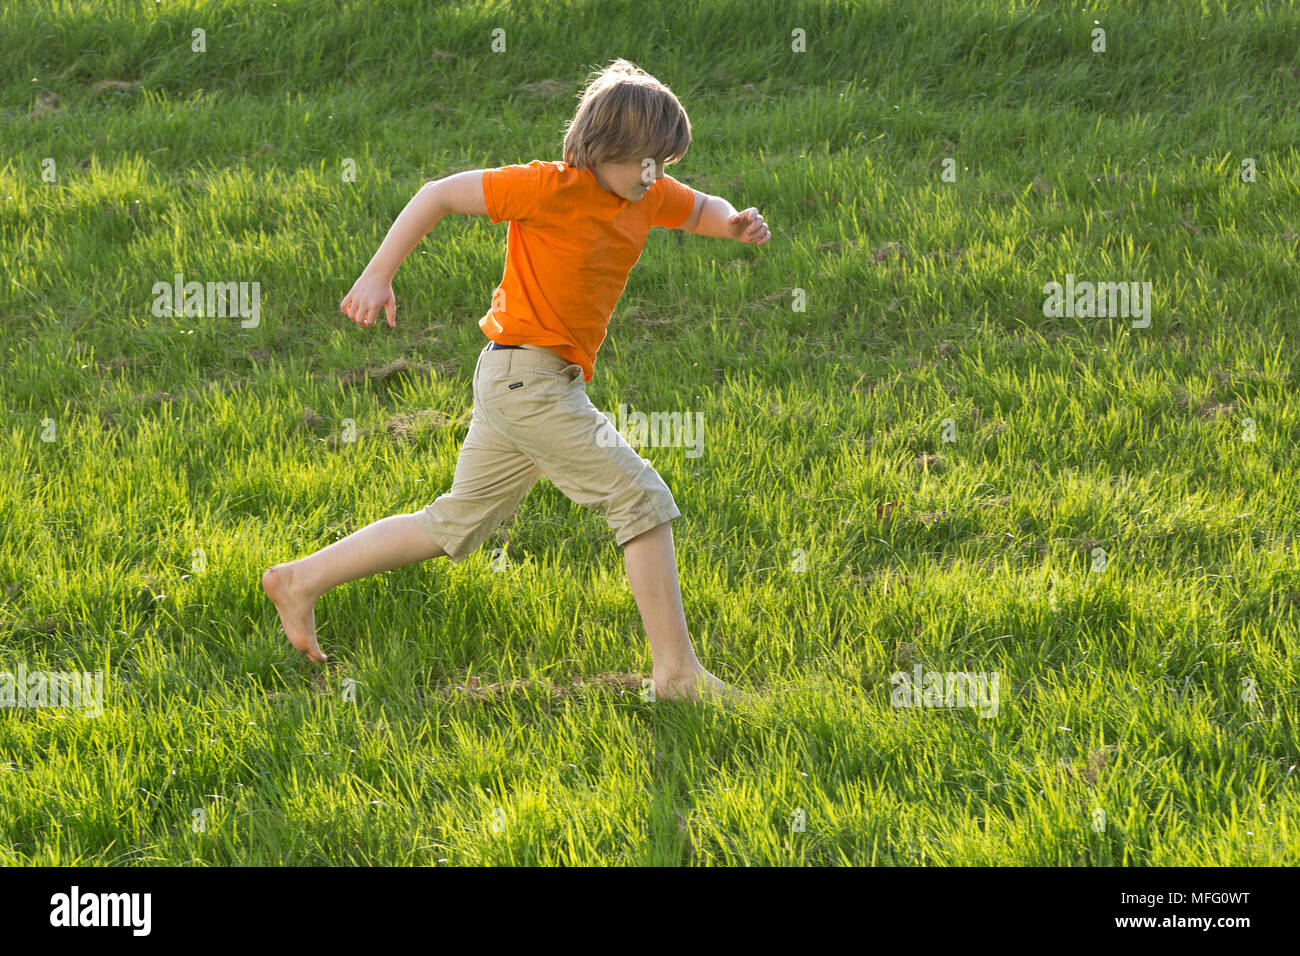 boy running across a meadow in his bare feet - Stock Image